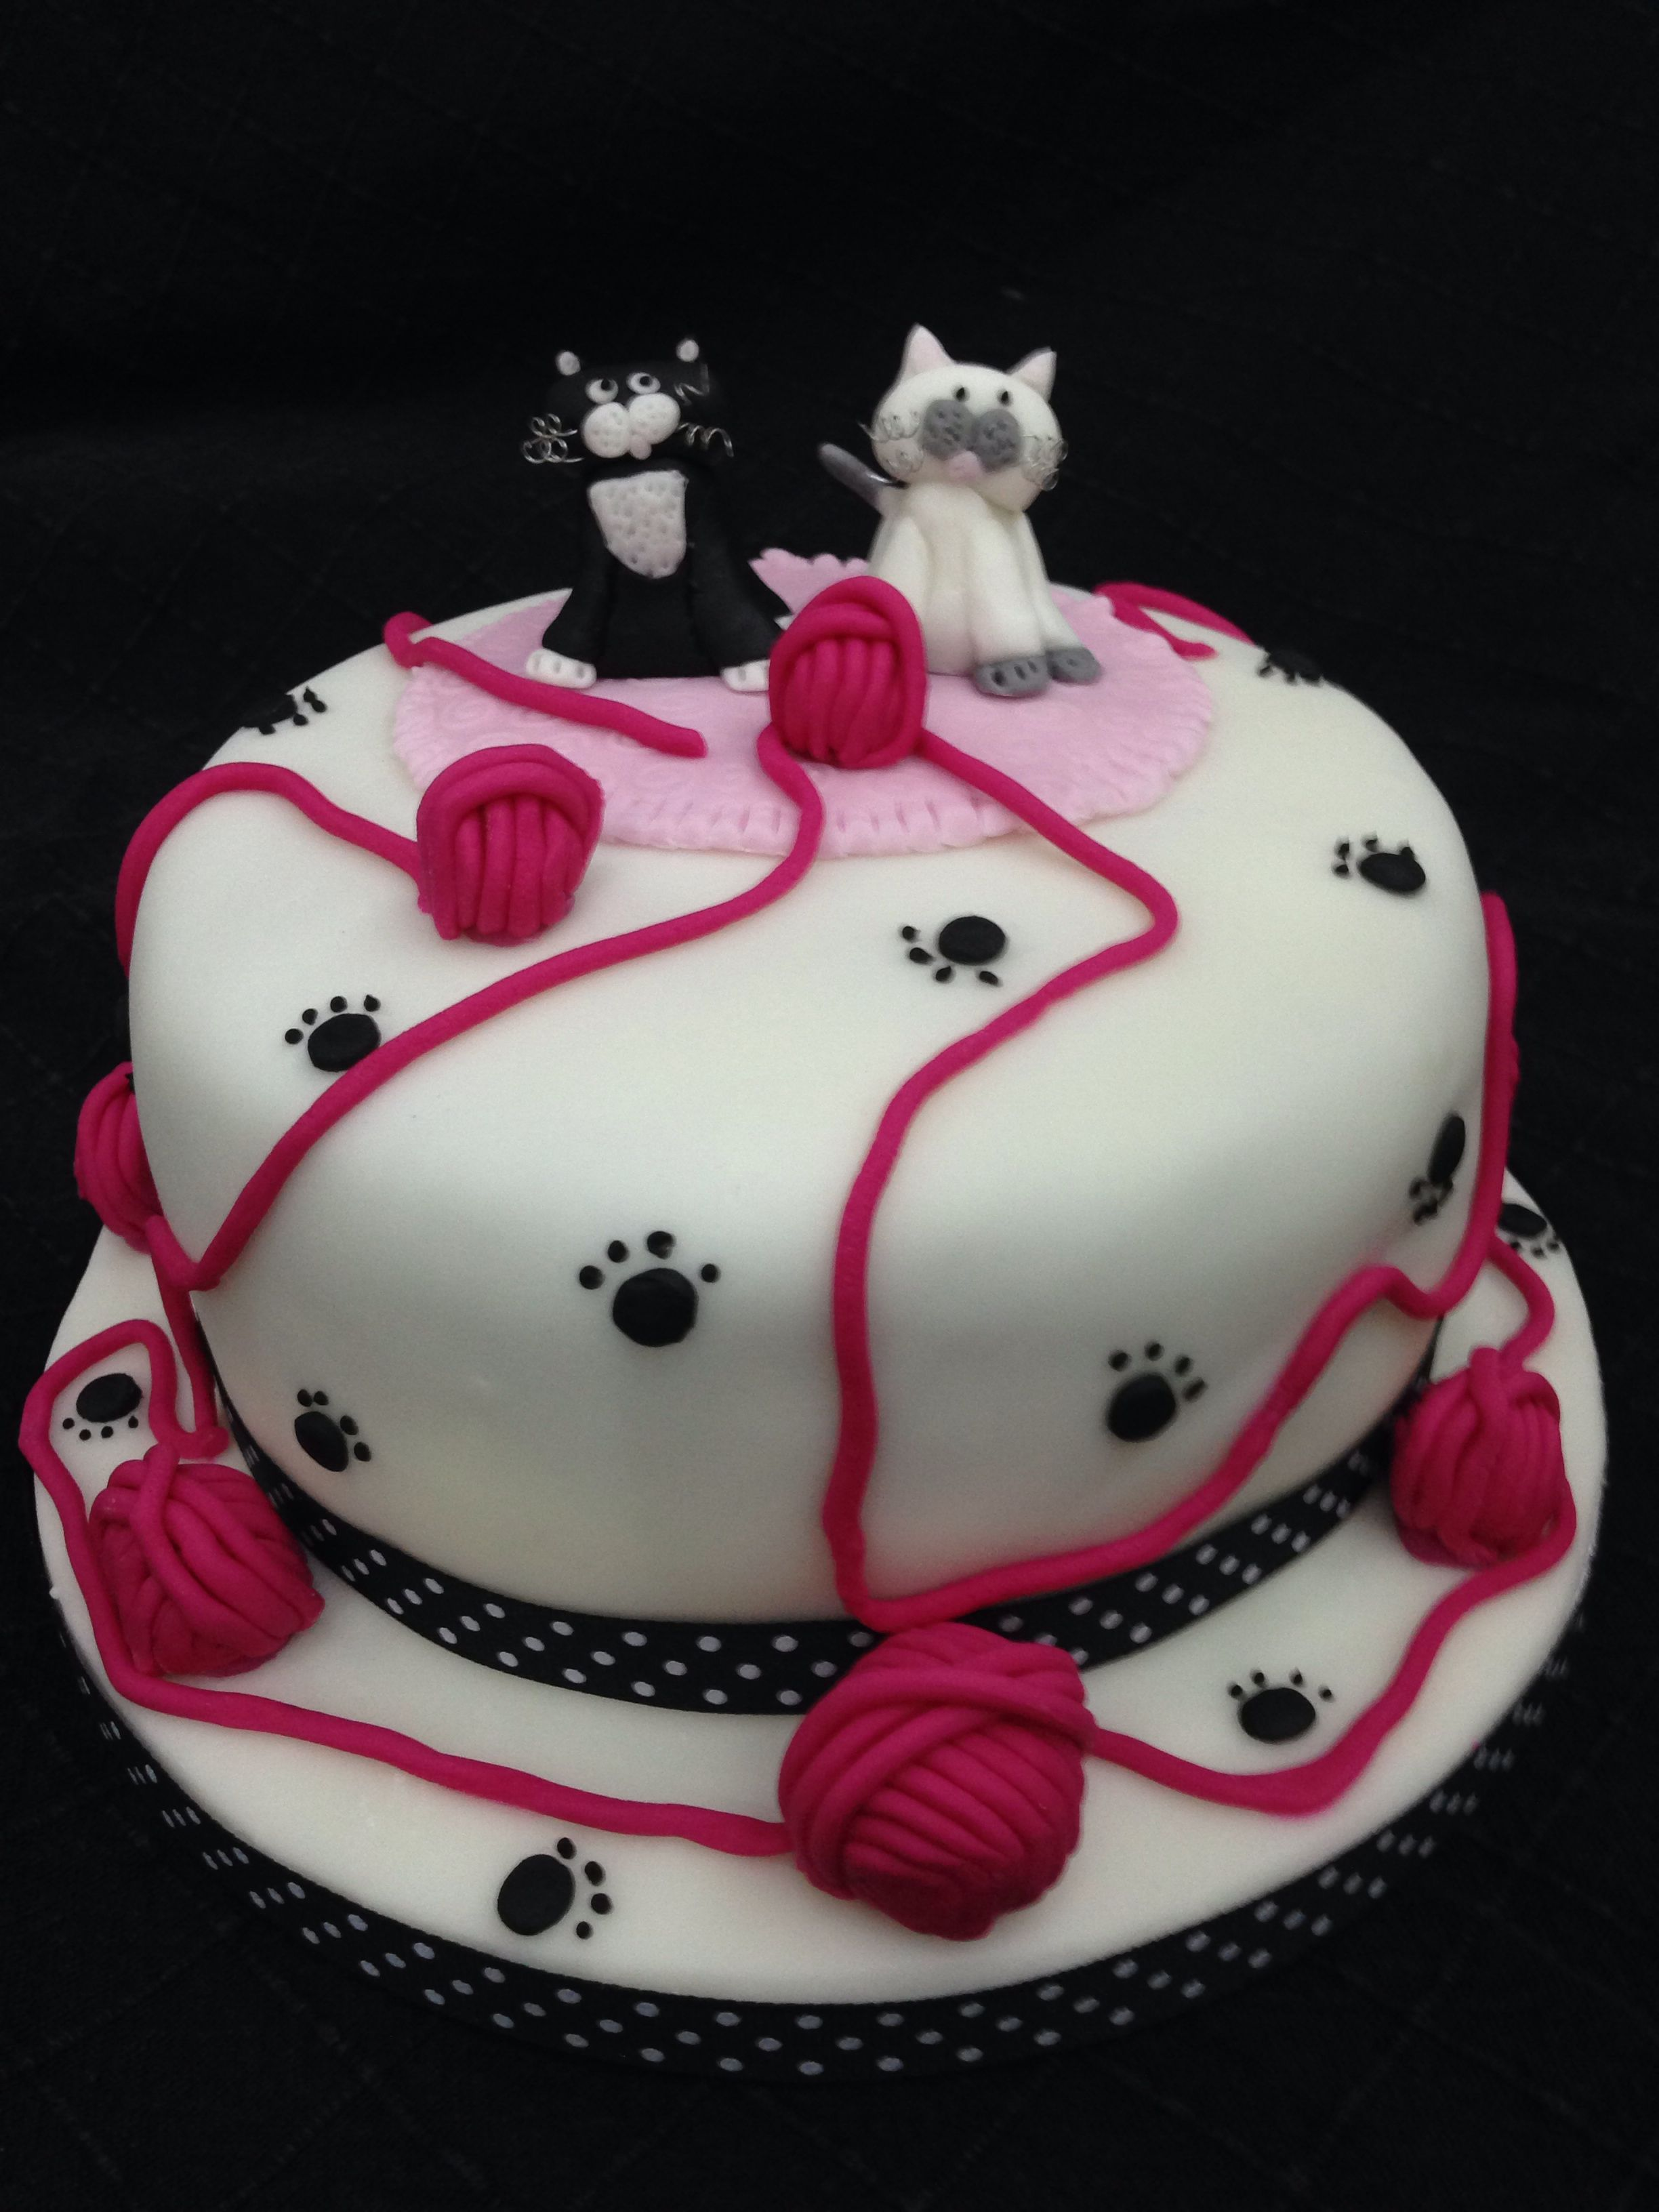 Cat Cake With 2 Fondant Cakes On Rug With Balls Of Wool And Paw